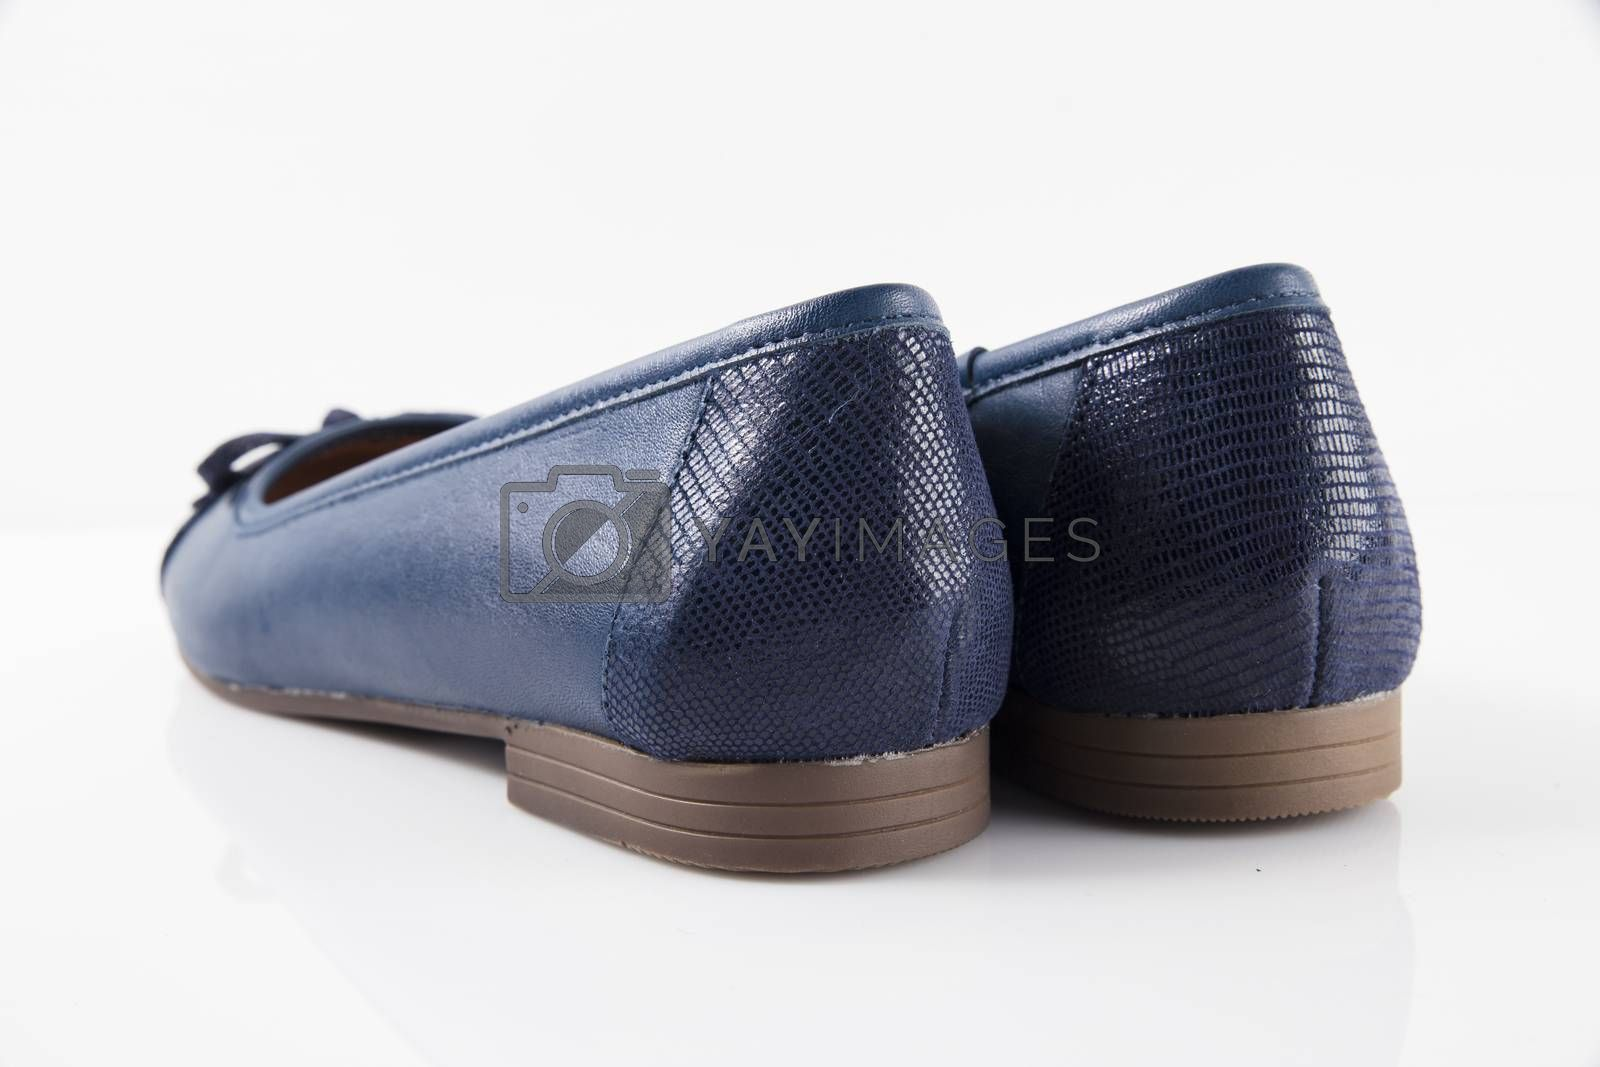 Pair of blue leather shoes on white background, isolated product, top view.